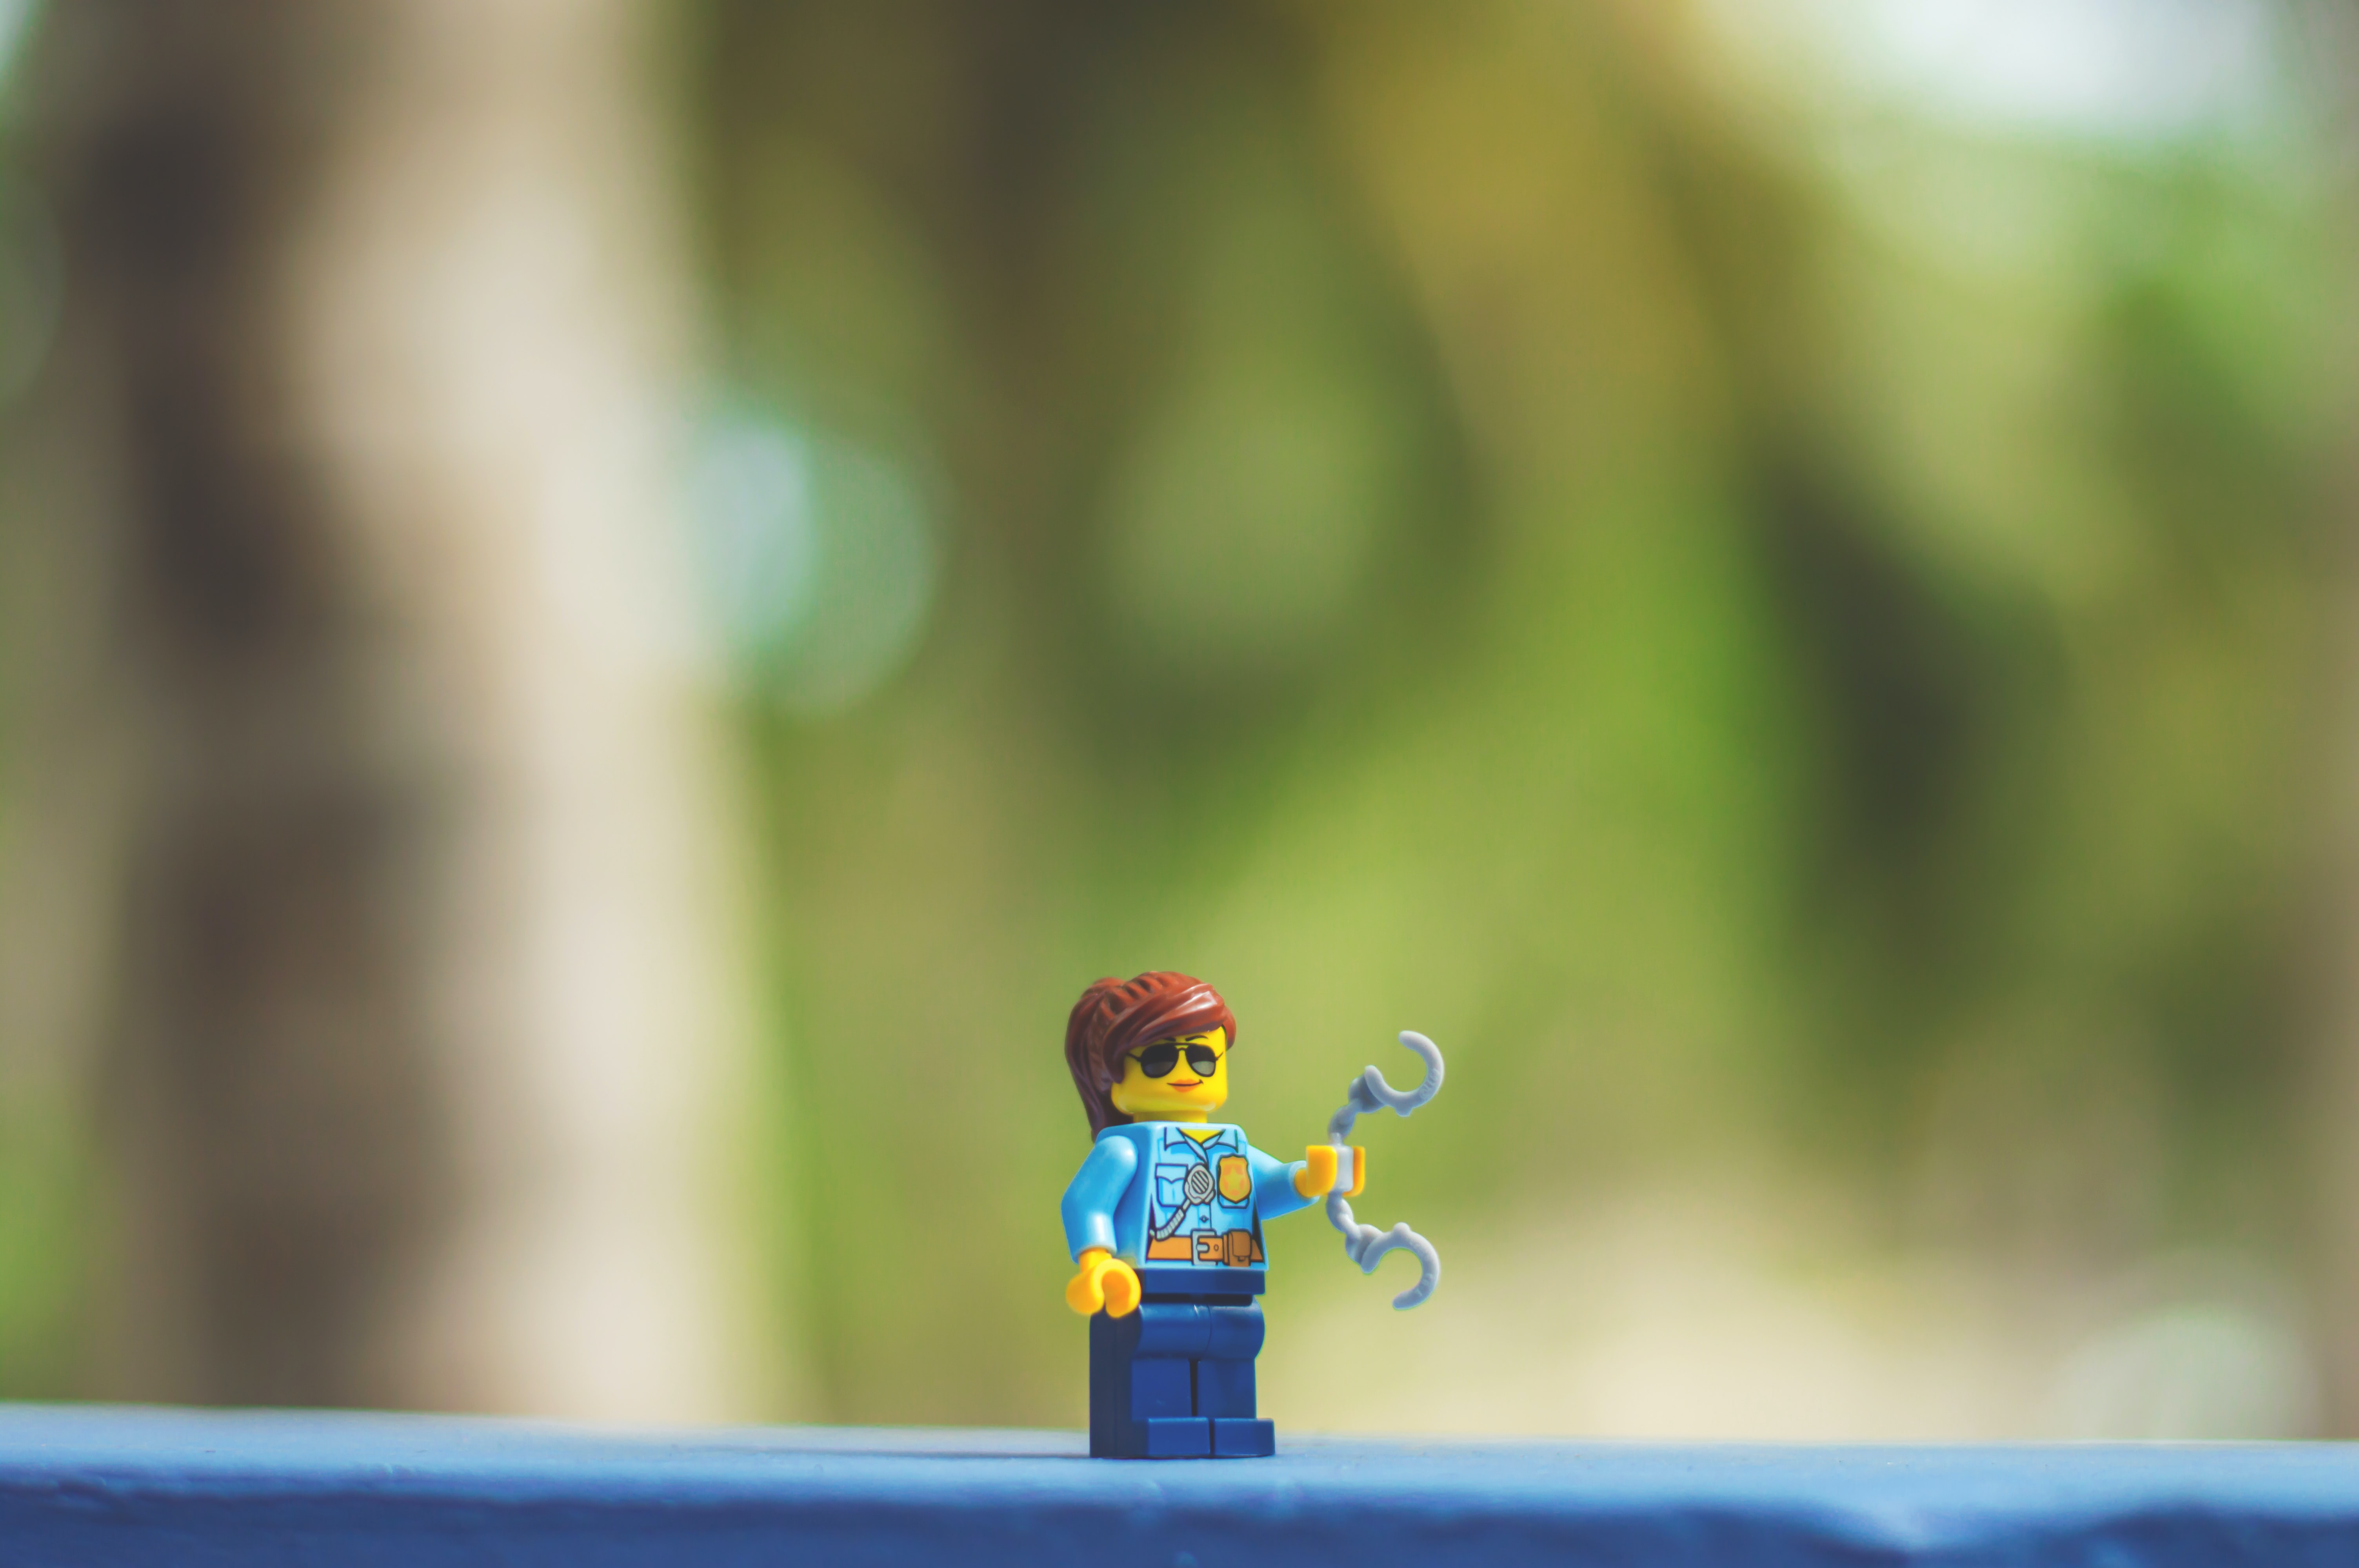 A little police officer Lego character holding handcuffs.